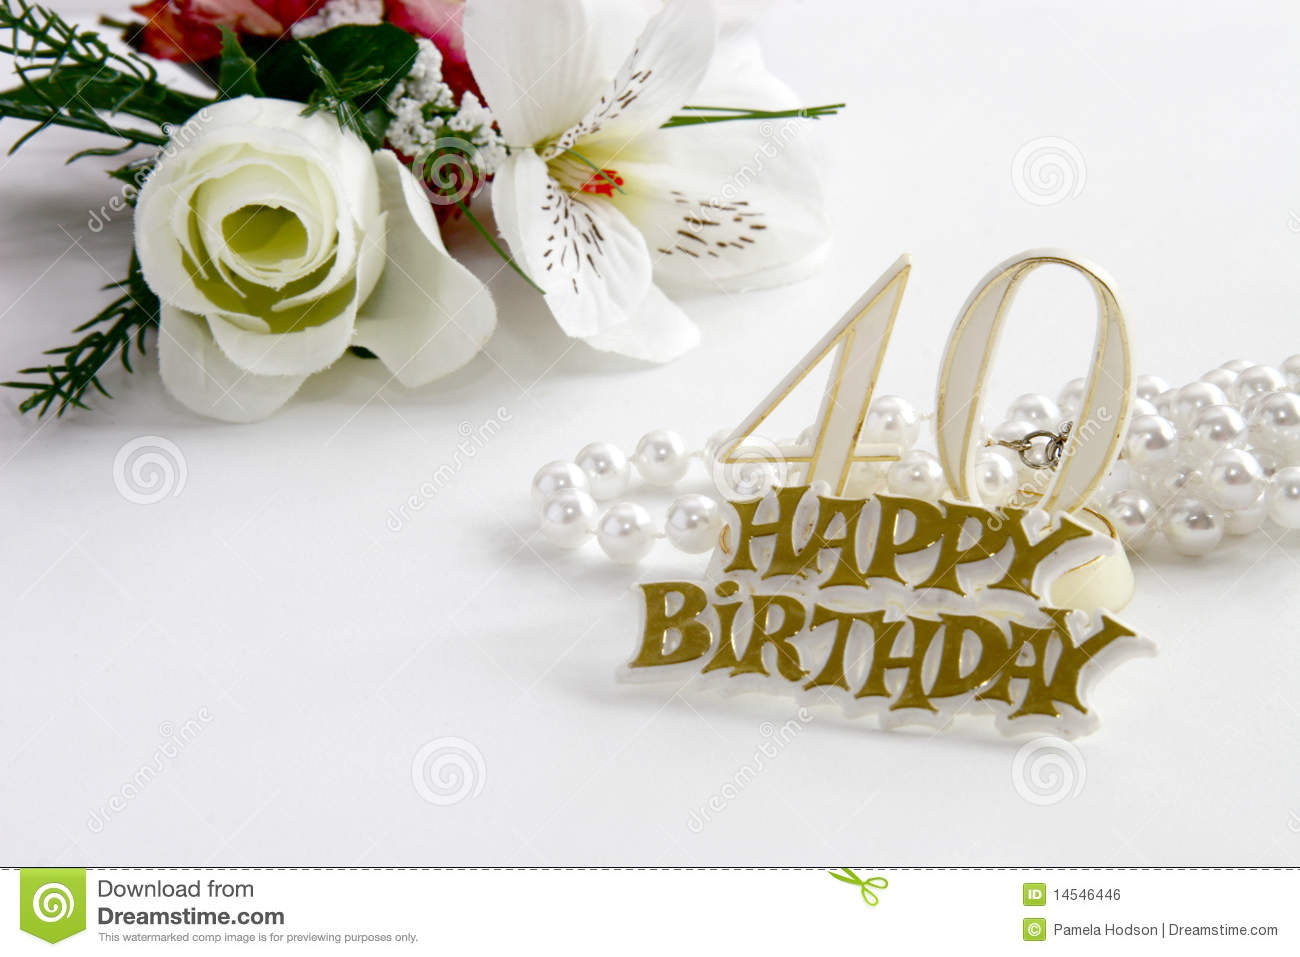 40th birthday wallpaper background - photo #34